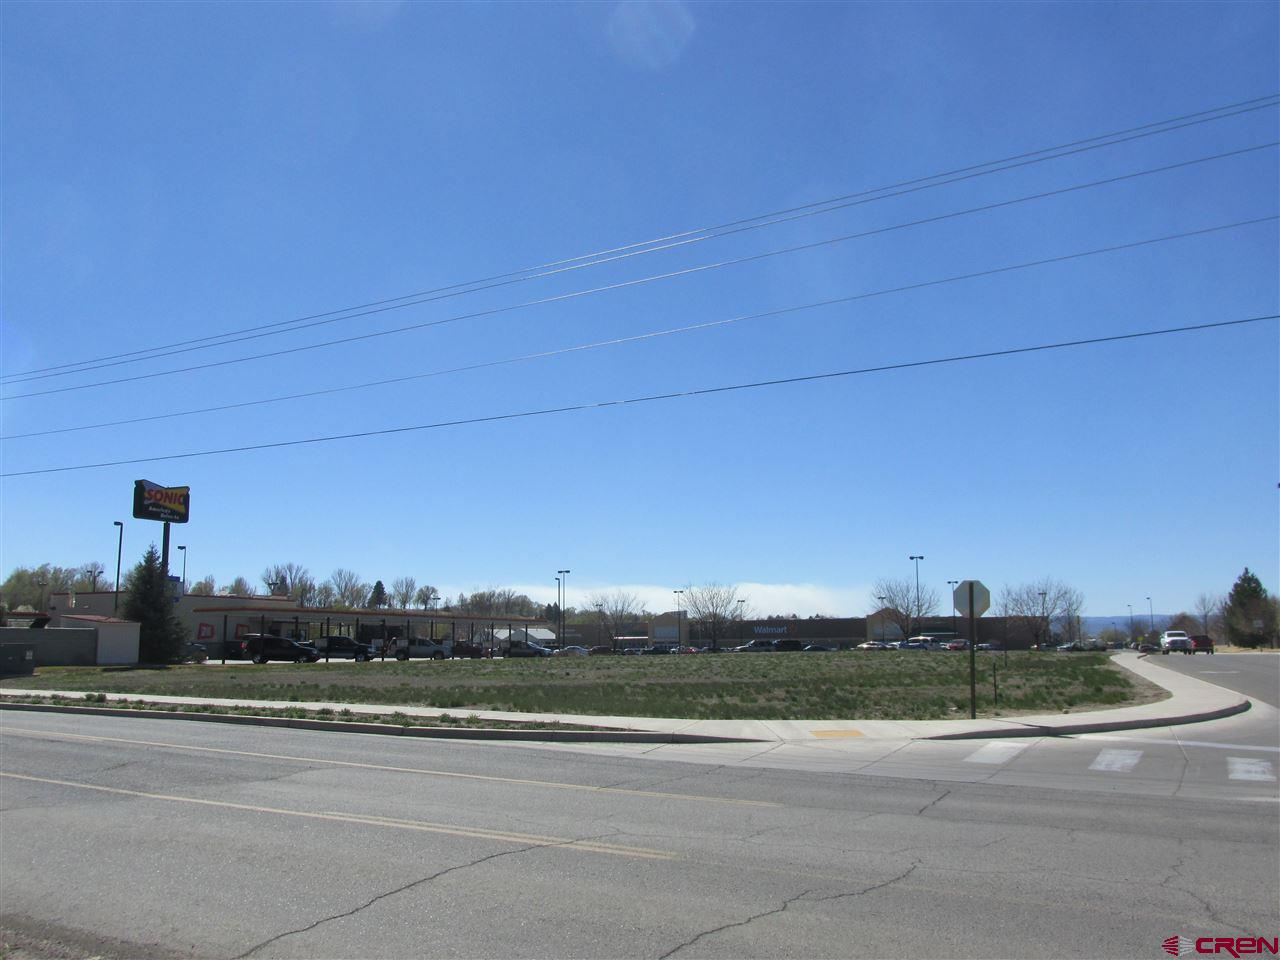 The Walmart Center Subdivision Lot 5. Corner Commercial Vacant Lot  Lot 5 is a .74 acre (MOL) vacant commercial lot located in the heart of Delta's commercial hub. No owners' association fees! Situated in the Walmart Center Subdivision, at the entrance to Walmart Supercenter and adjacent to The Delta Center. Centrally located for shoppers from Delta and the surrounding communities. Only Walmart shopping center within a 20-mile area. Located just off Highway 92 next to Sonic. Curbs, gutters and sidewalks already installed. Utilities are available. Ready for construction. Excellent location for your business!